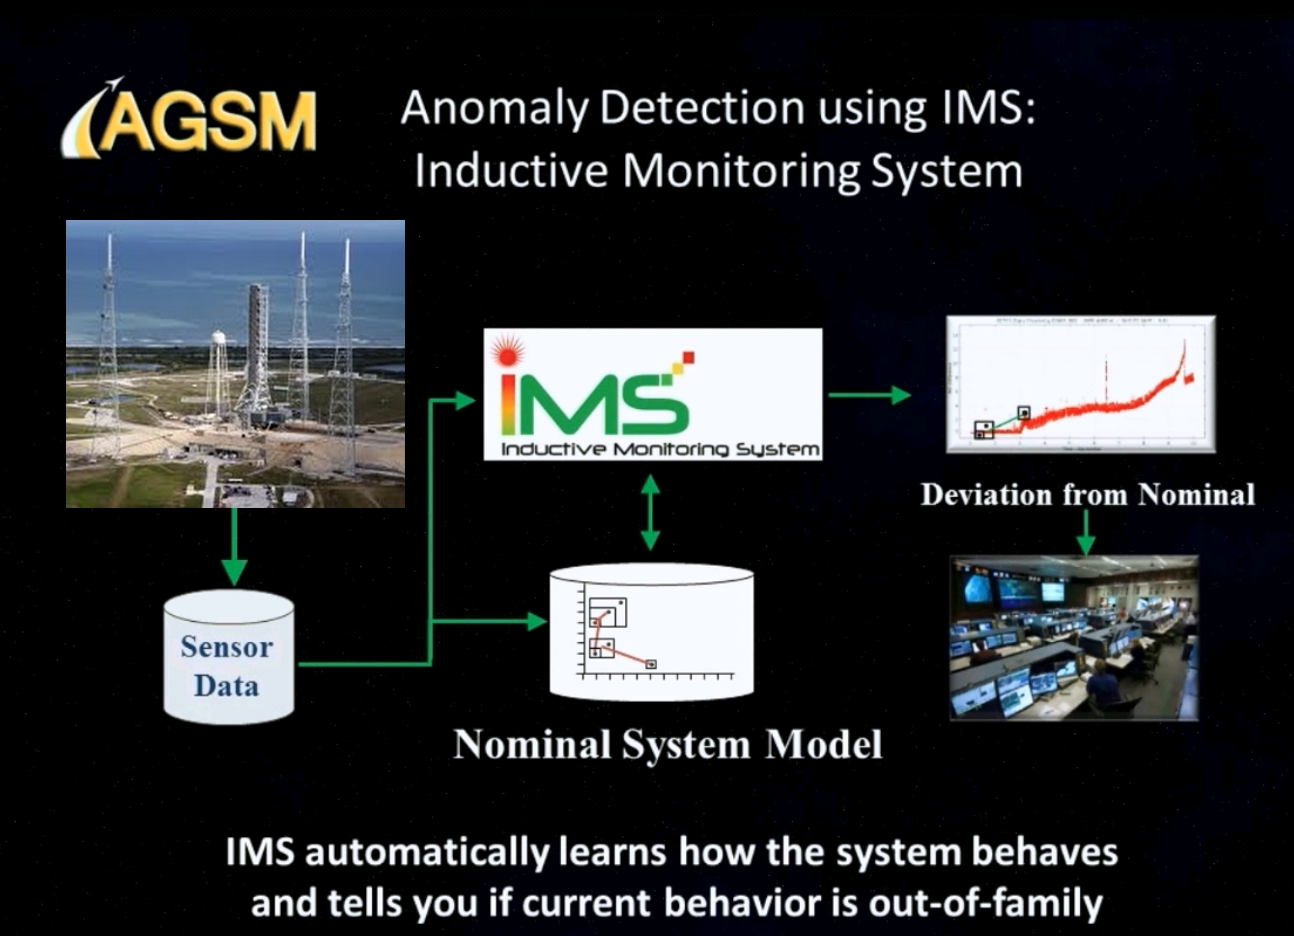 Diagram of Anomaly Detection using IMS